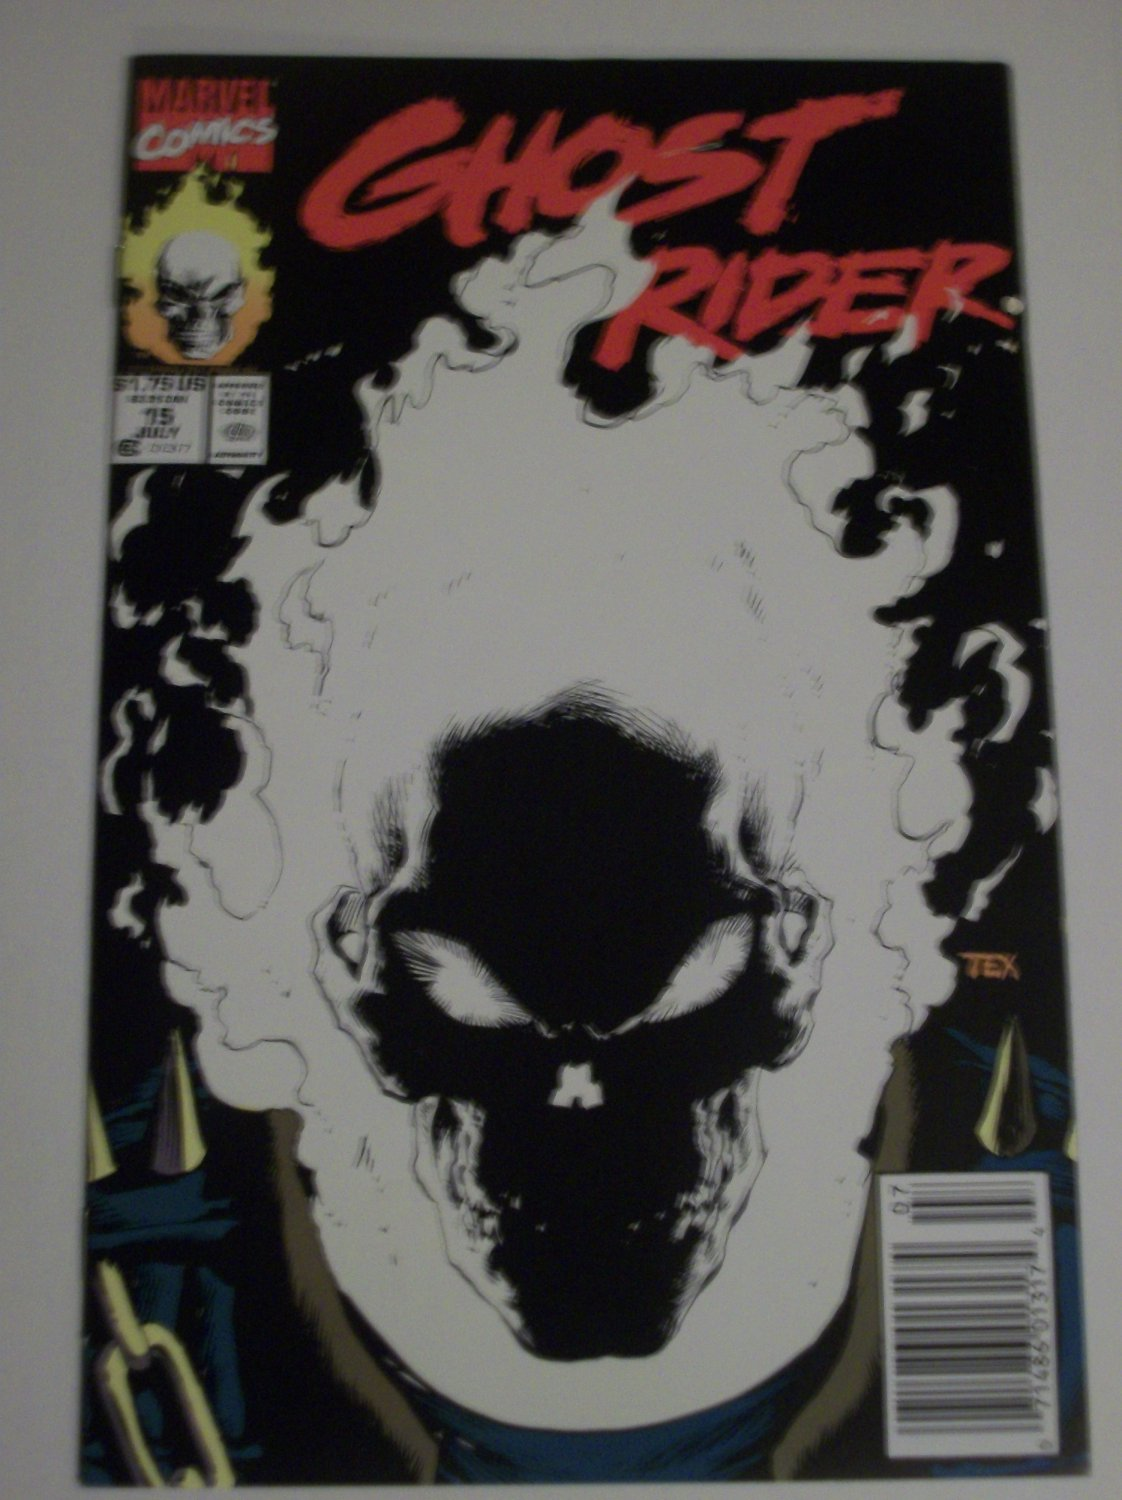 Ghostrider #15 Glow in the Dark Cover